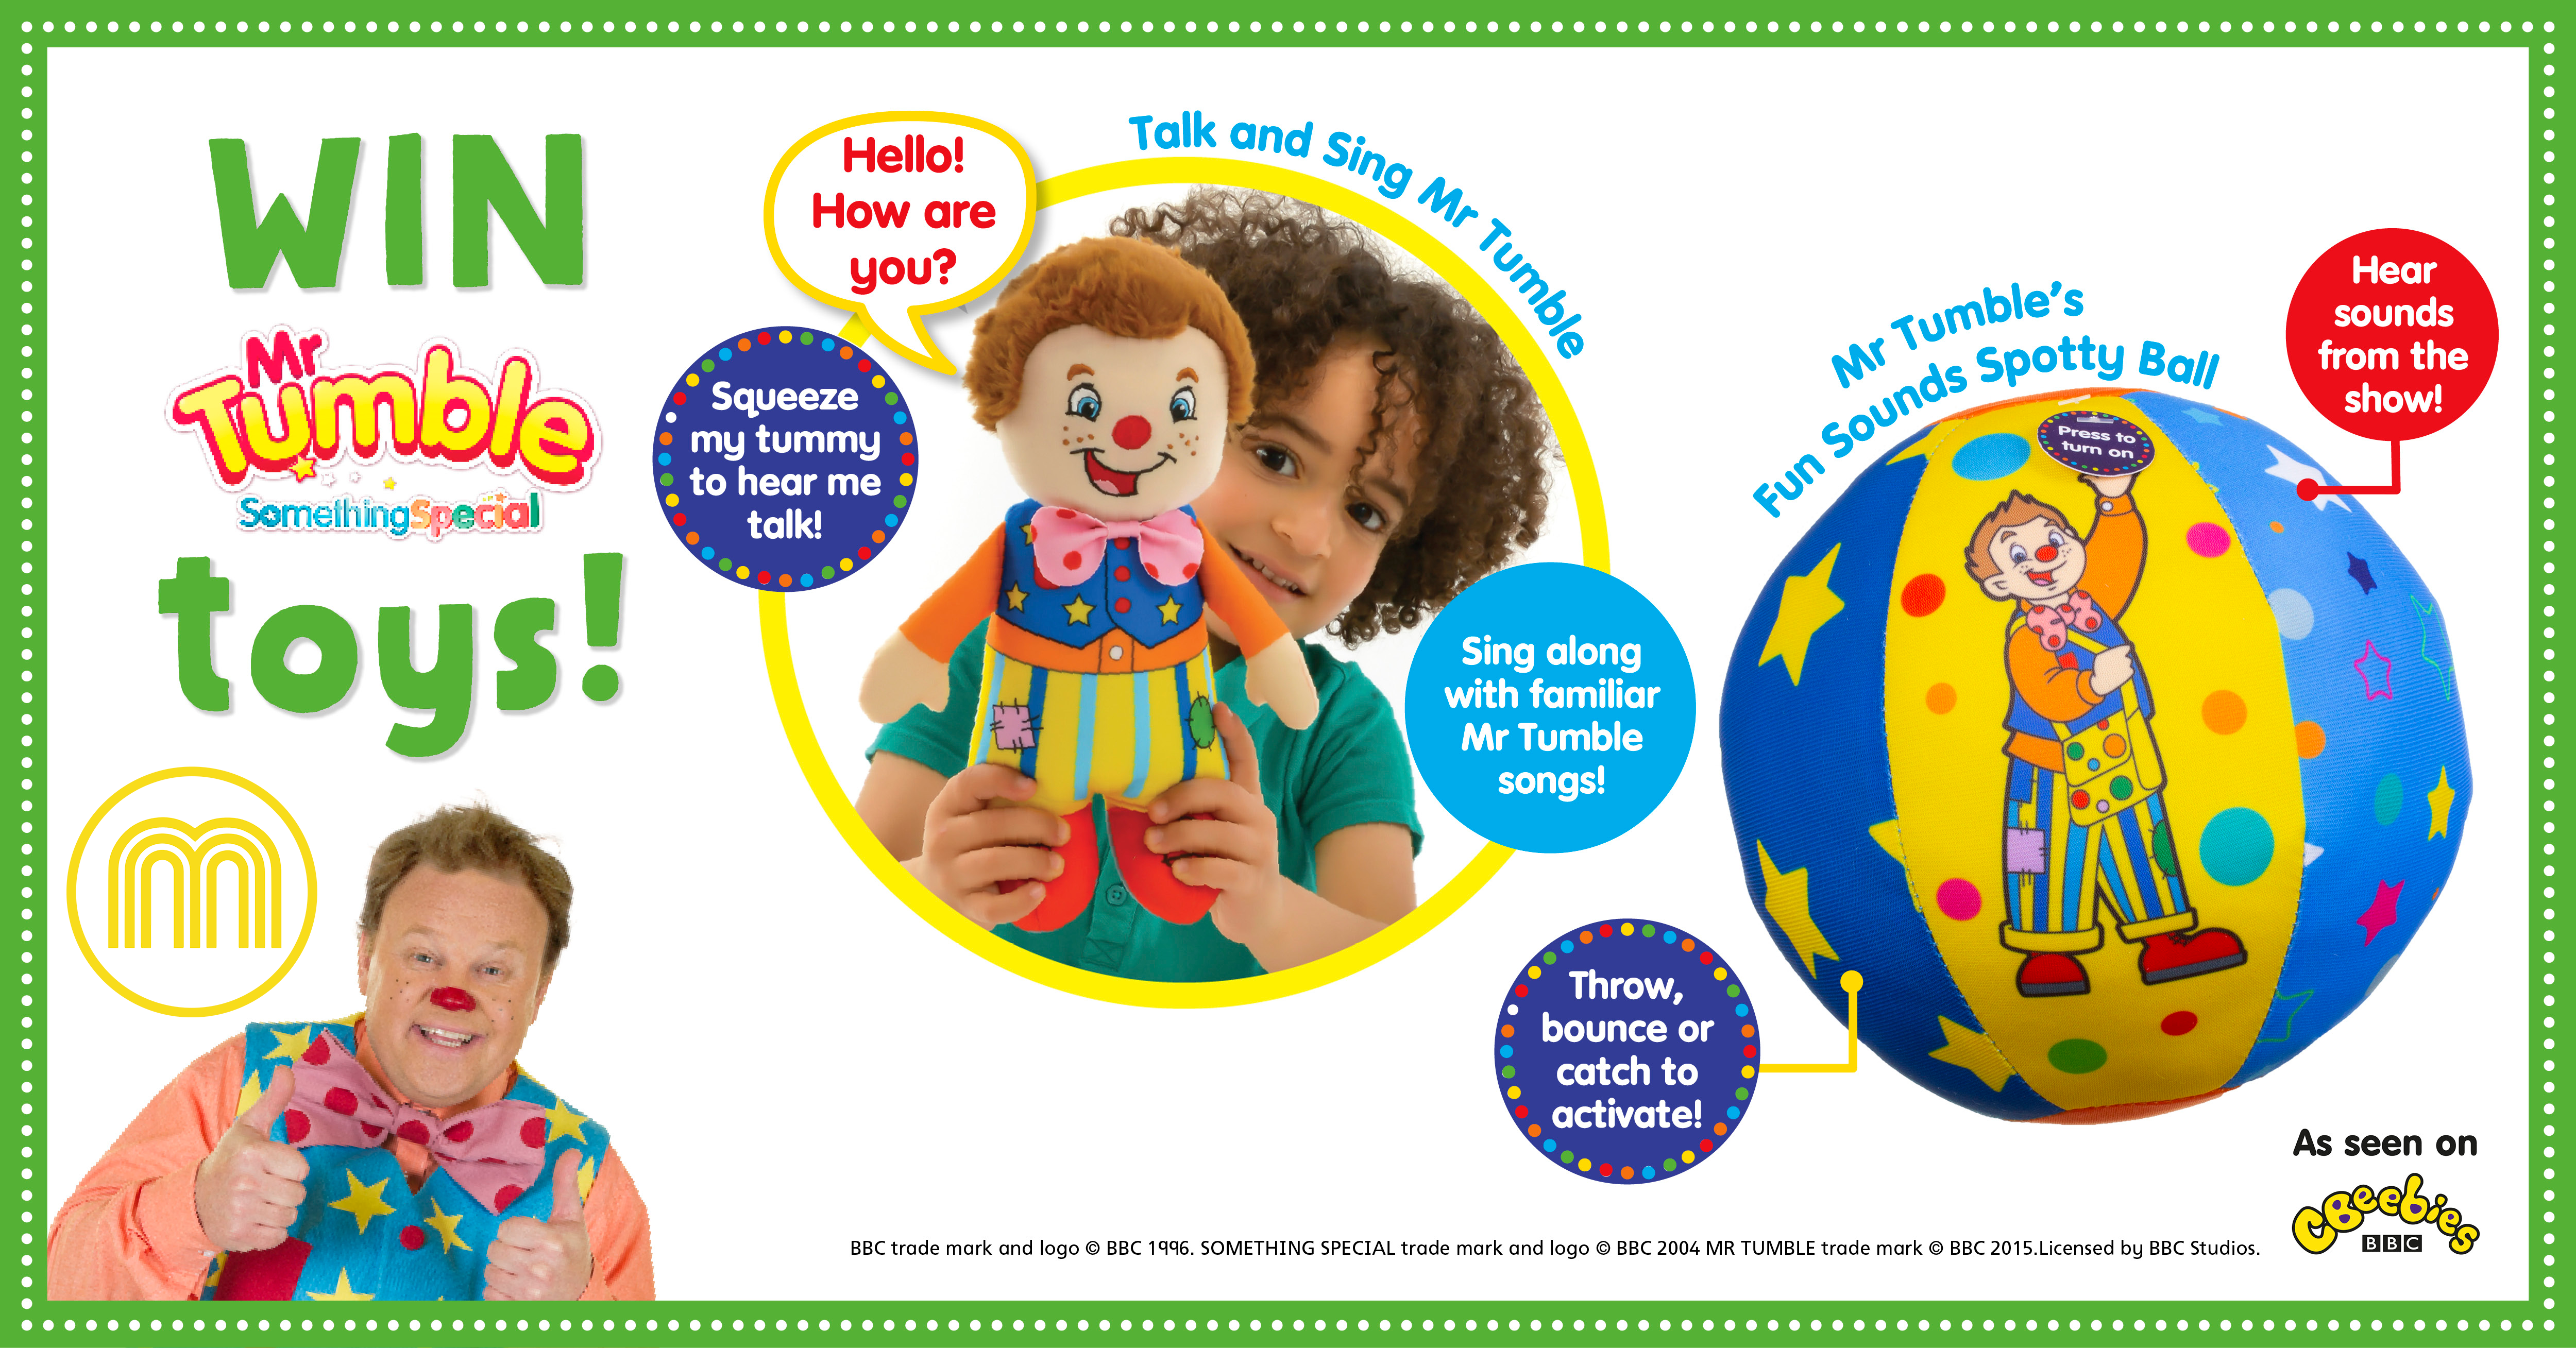 A young child holding a Mr Tumble doll, and a ball with a picture of Mr Tumble on it